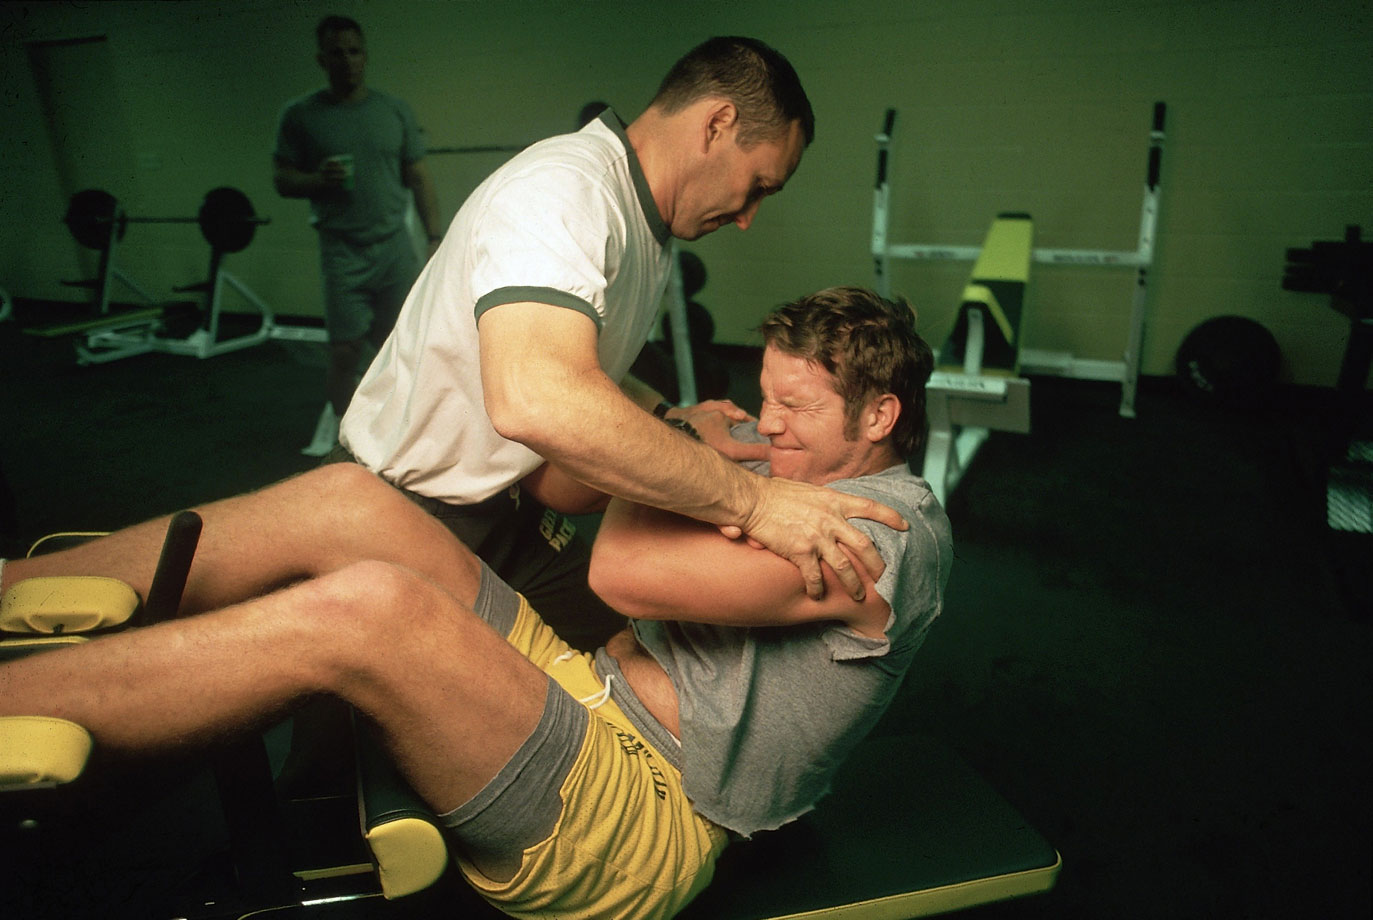 At 11 a.m. Favre leaves his house for the two-mile drive to the Packer training complex at Lambeau Field. There, strength-and-conditioning coach Kent Johnston sets to work on Favre's aching body, guiding him through exercises that include sit-ups and a medicine-ball drill designed to loosen his stiff joints and muscles.